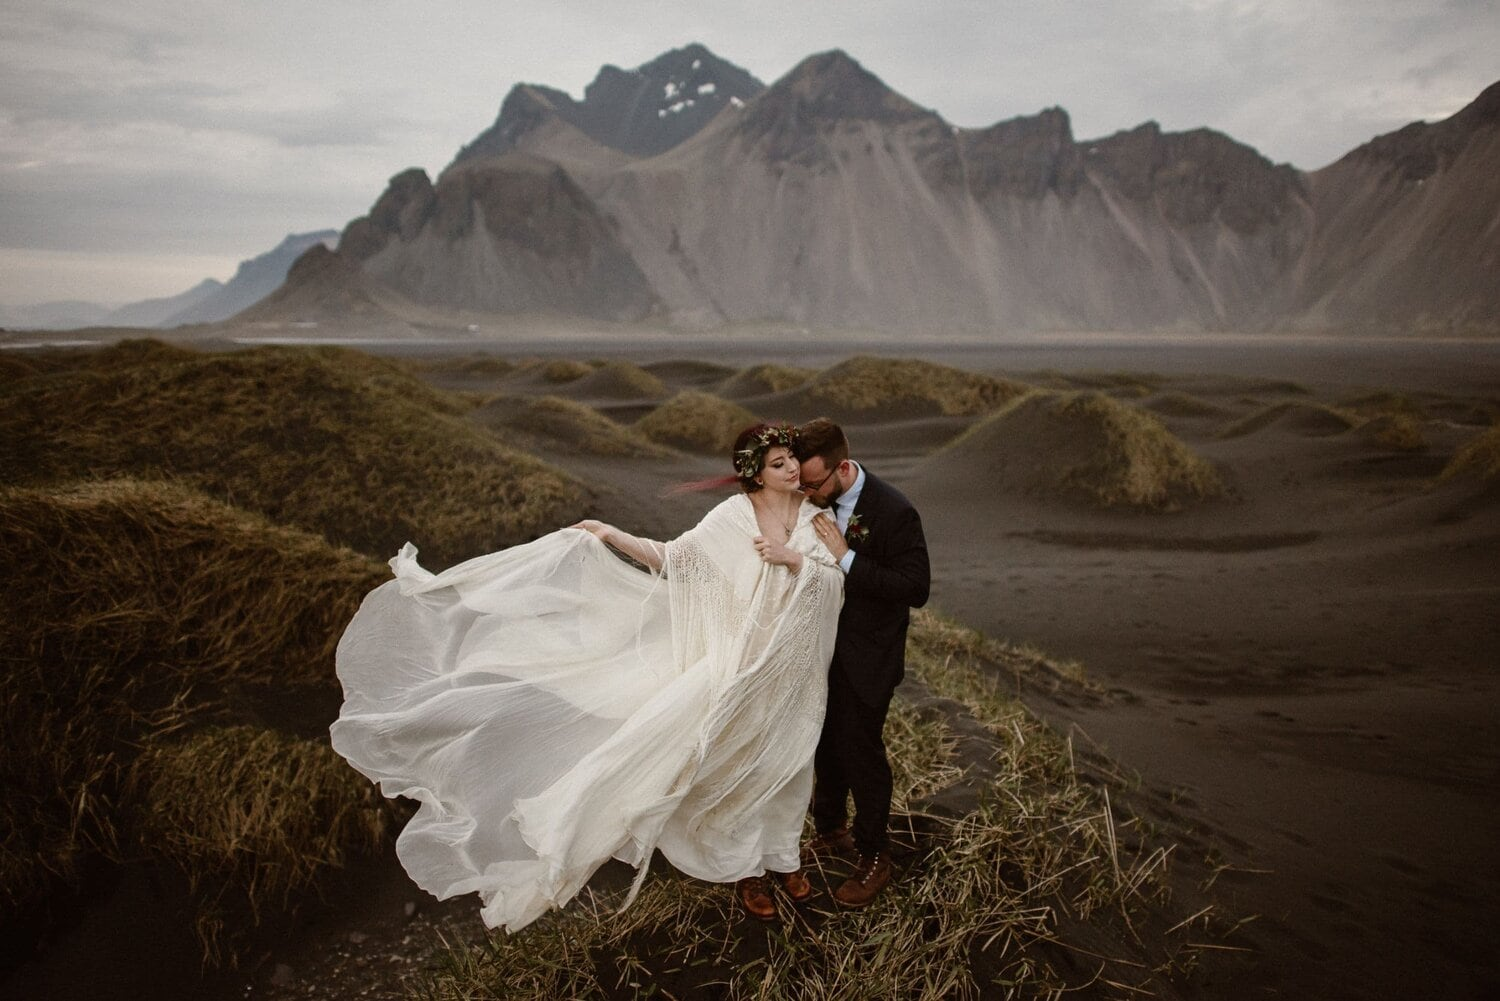 Bride holds her dress next to her husband in front of the mountains.